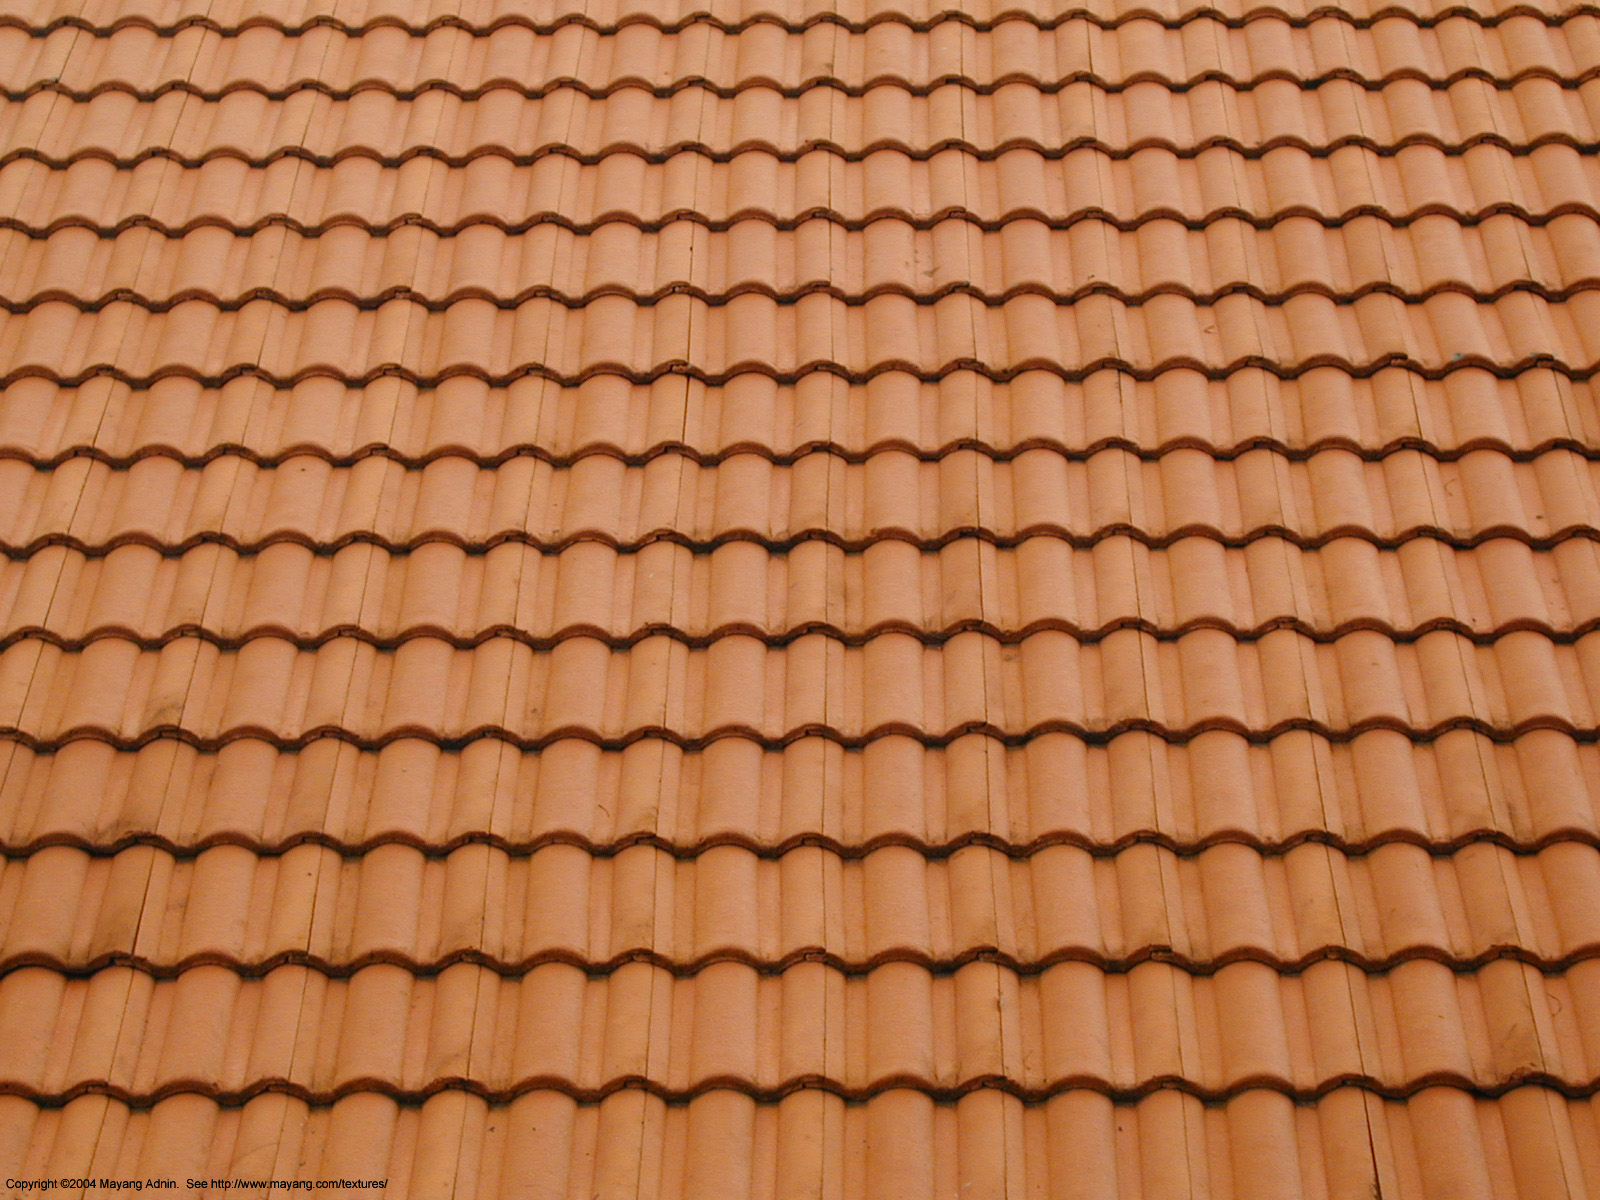 My Home Design: Roof Tiles